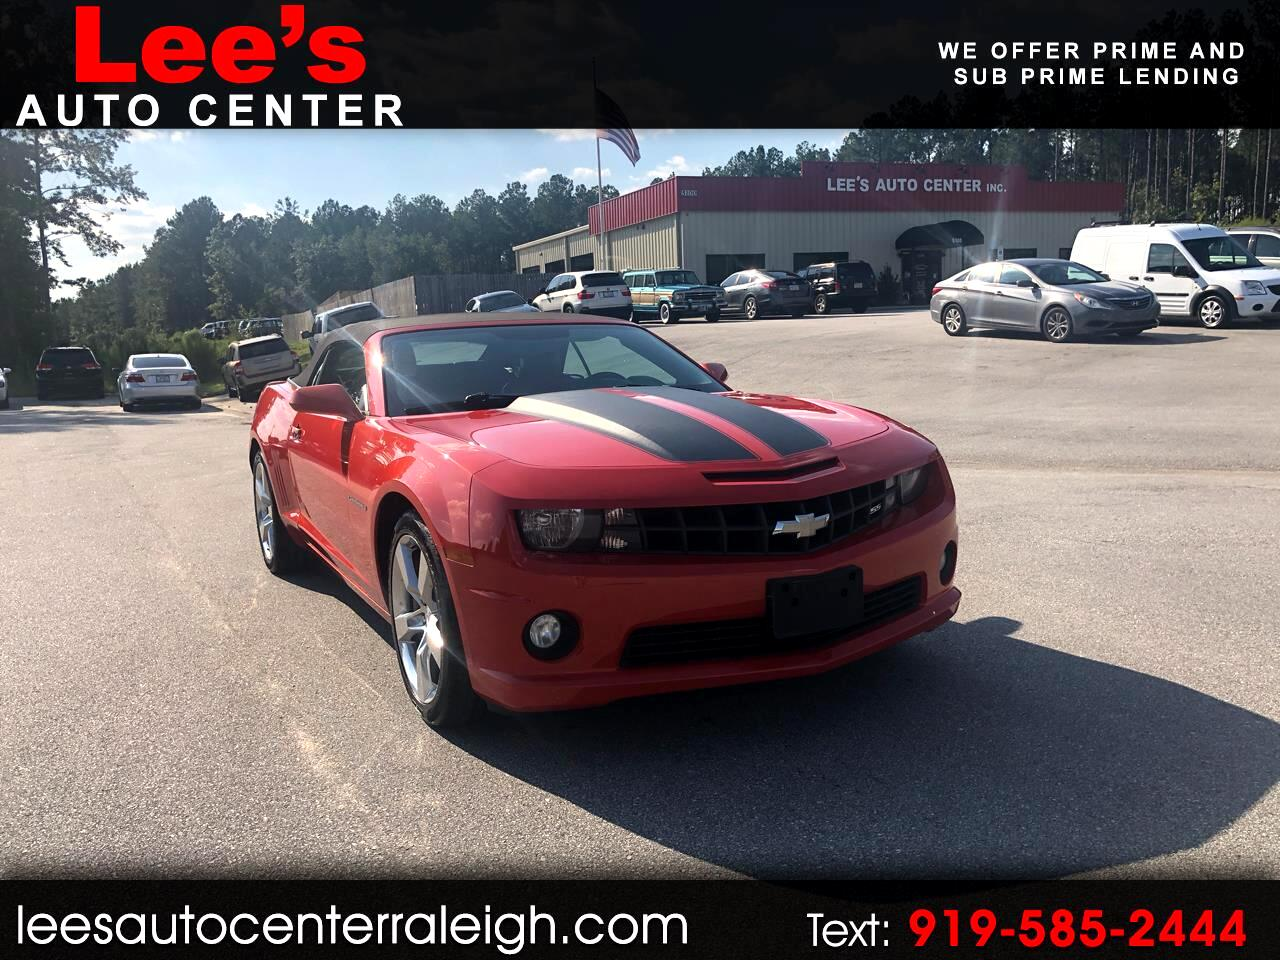 2012 Chevrolet Camaro SS Converitble 6 speed manual!! LS2 Power!!!